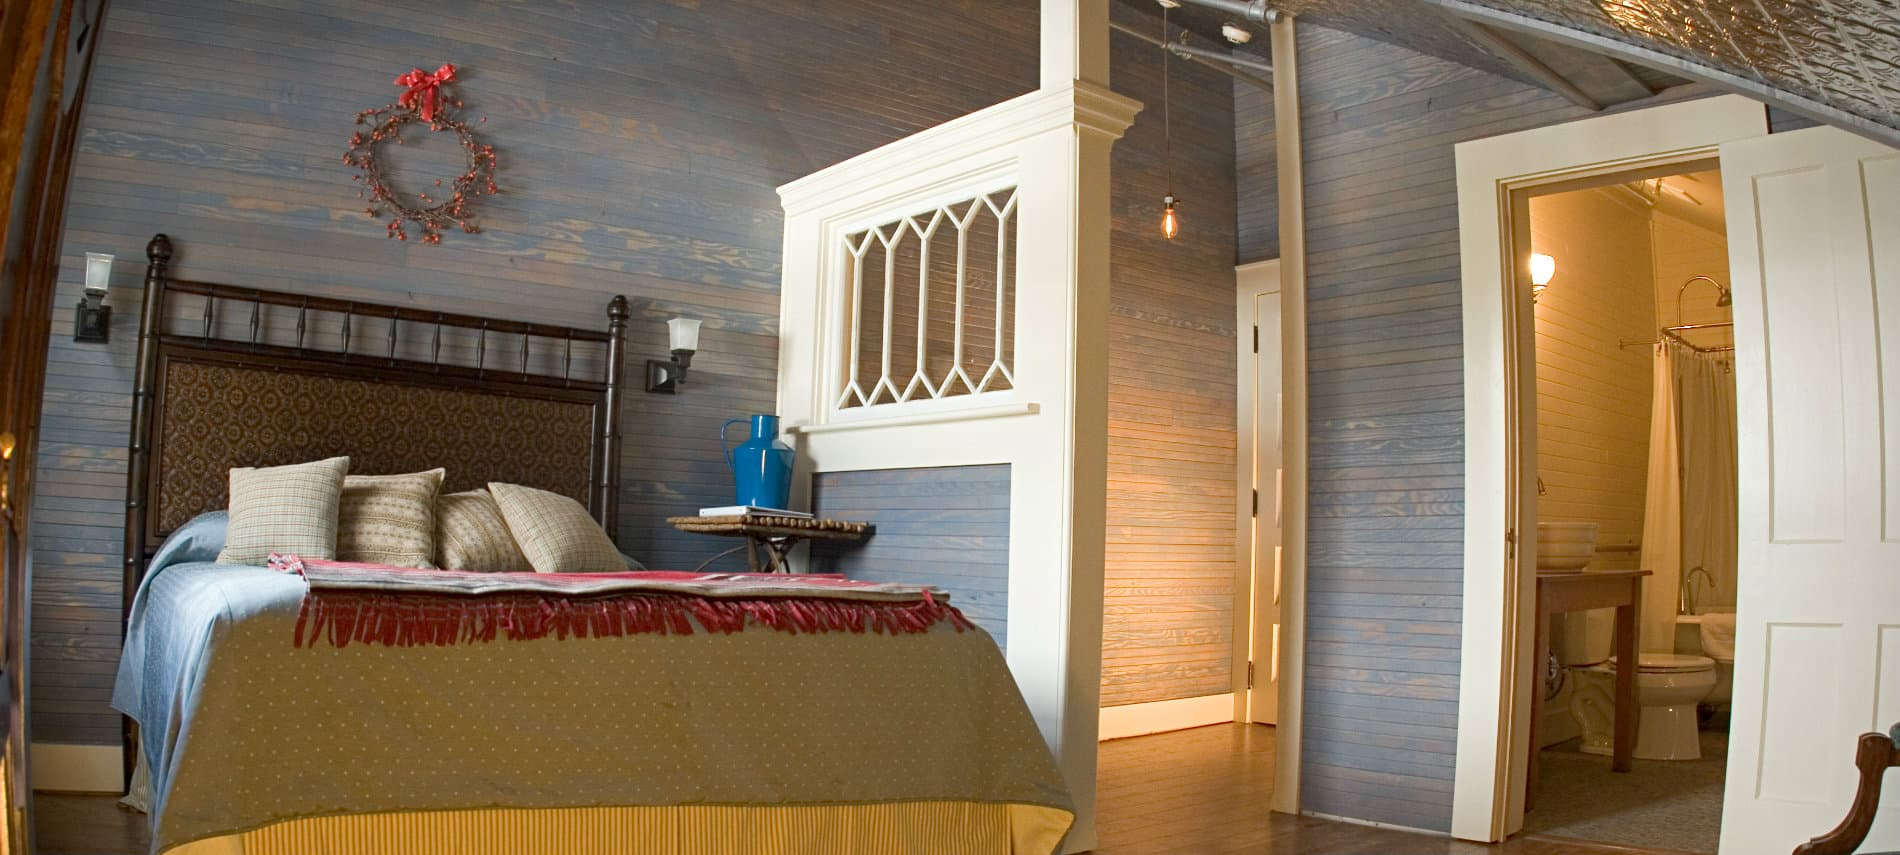 Unique pitched roof bedroom with blue wash wooden paneling and a bed set into an alcove next to a window.